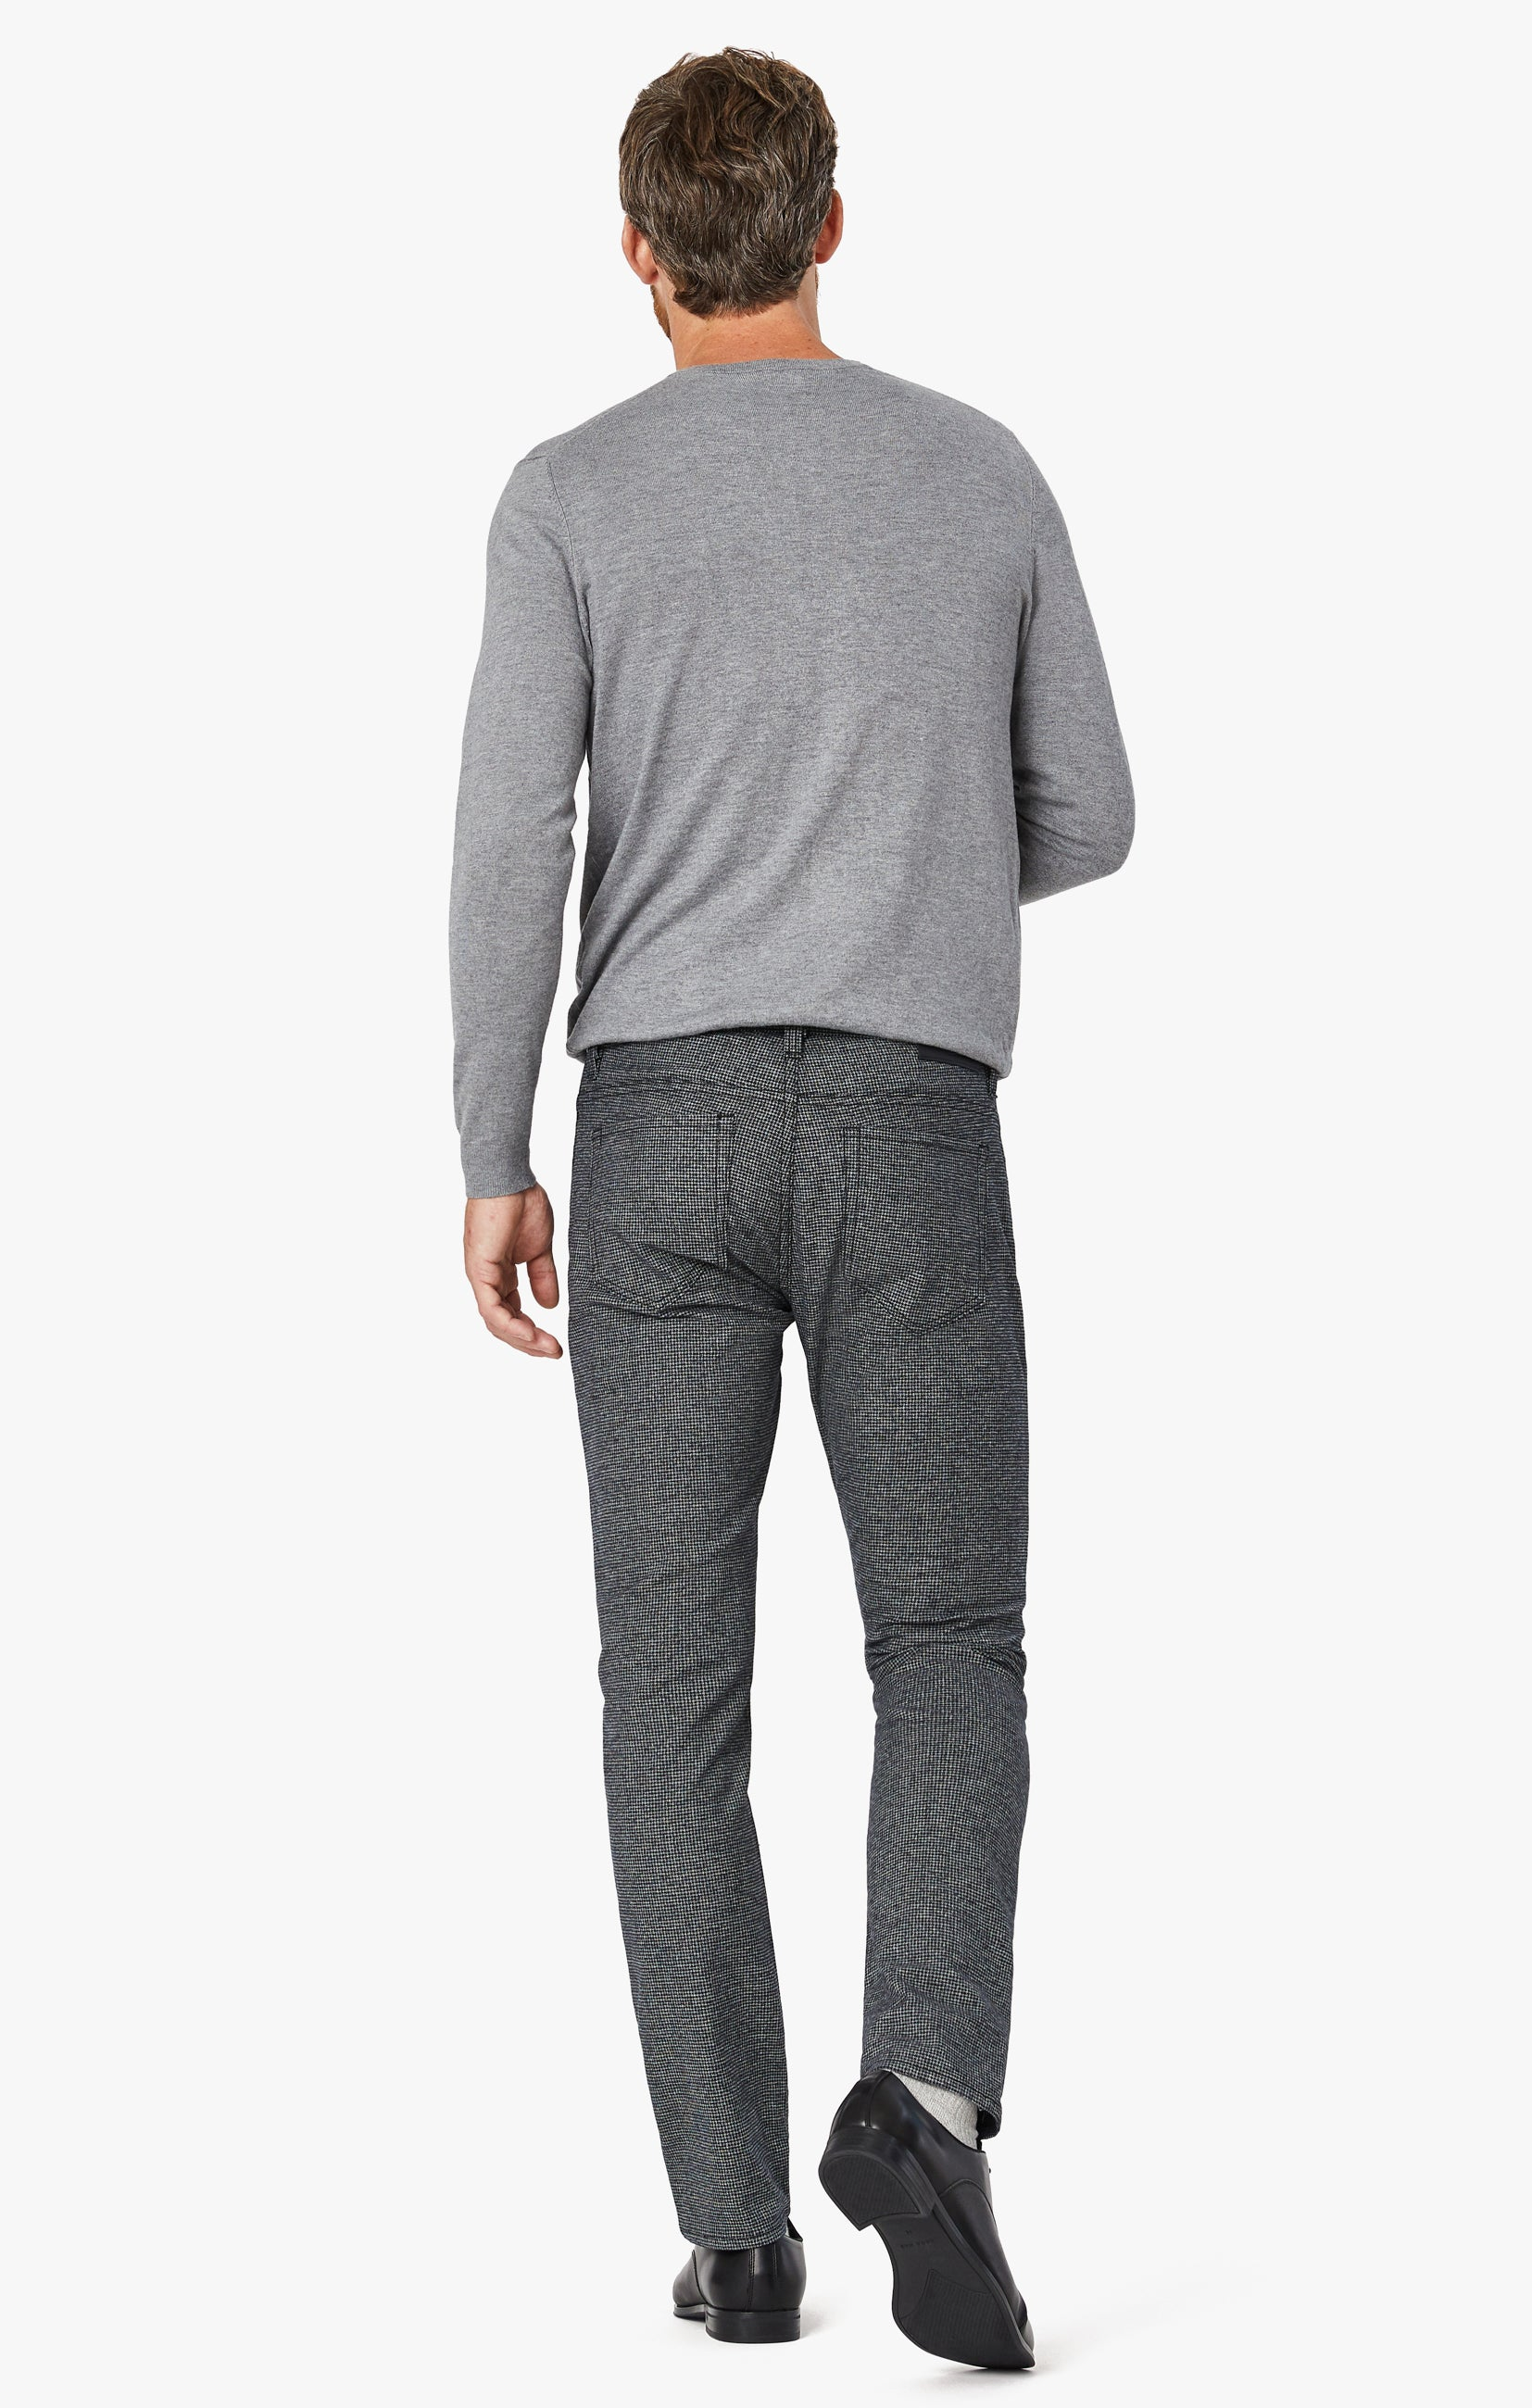 Courage Straight Leg Pants In Grey Houndstooth Image 6